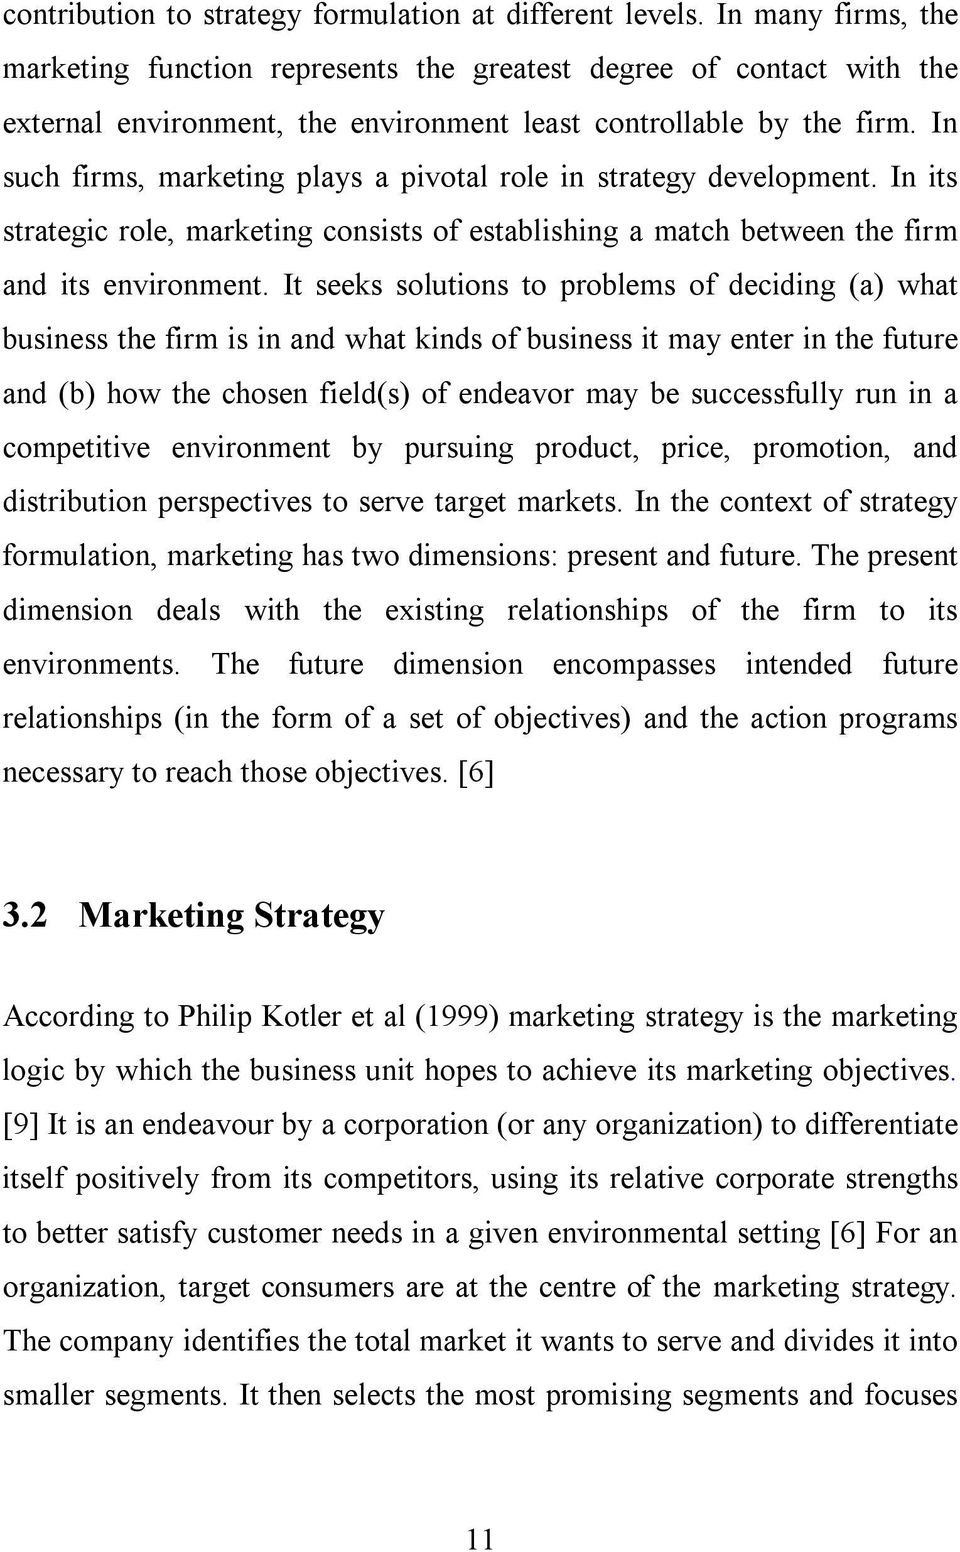 In such firms, marketing plays a pivotal role in strategy development. In its strategic role, marketing consists of establishing a match between the firm and its environment.